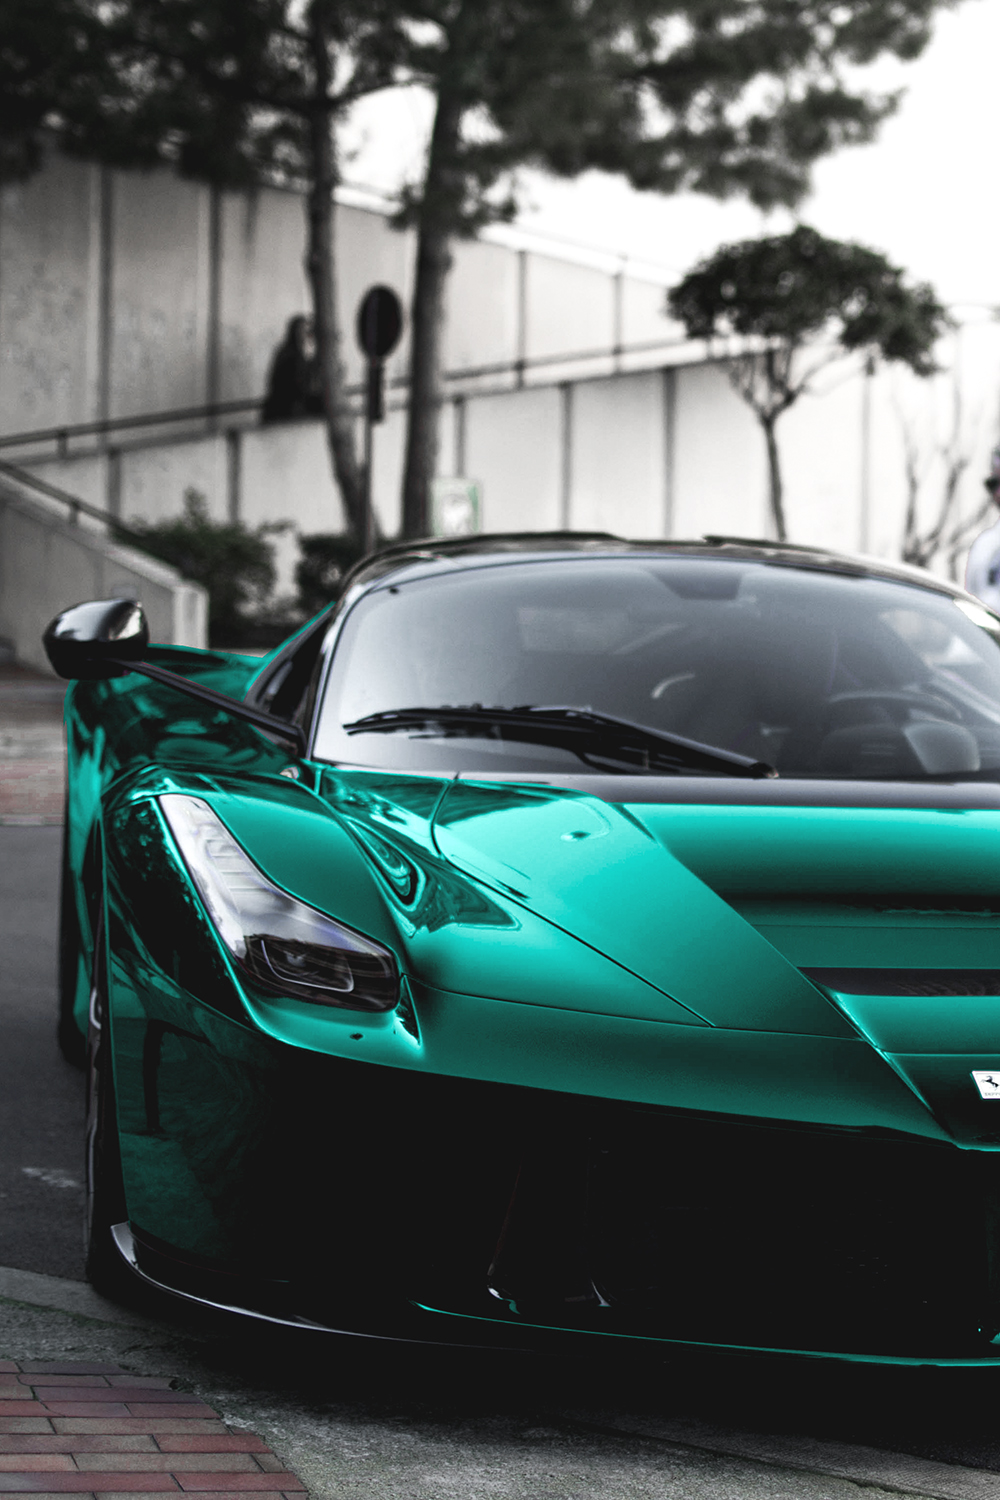 car motor ferrari laferrari green color sportscar luxury